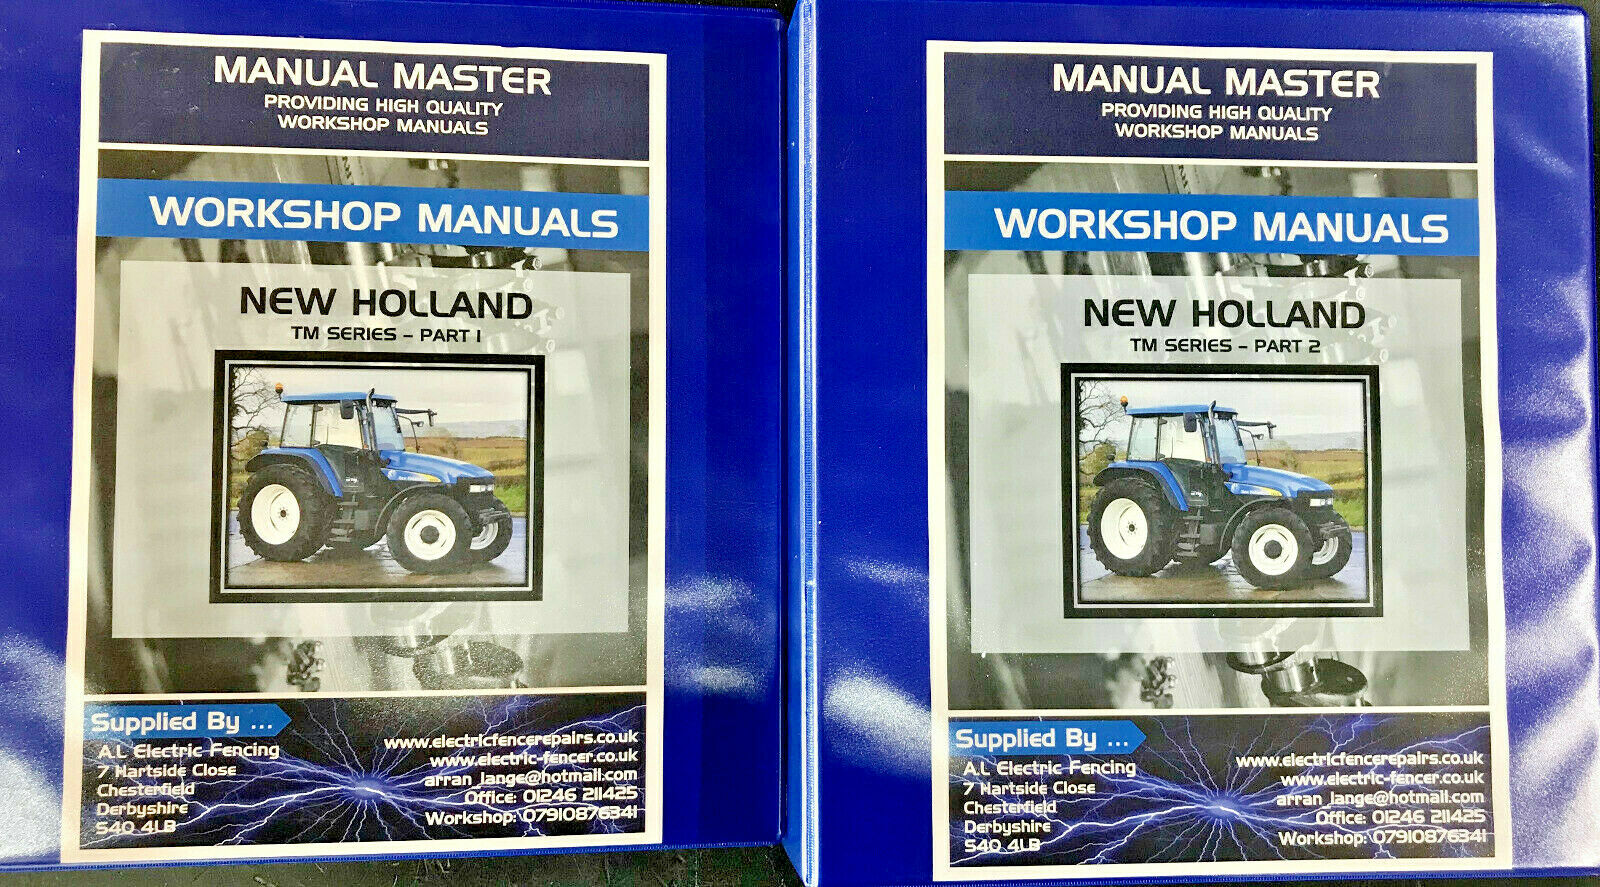 New Holland Digger Tractor Loader Backhoe Nh75 Nh85 Nh95 Workshop Service Manual Other Tractor Publications